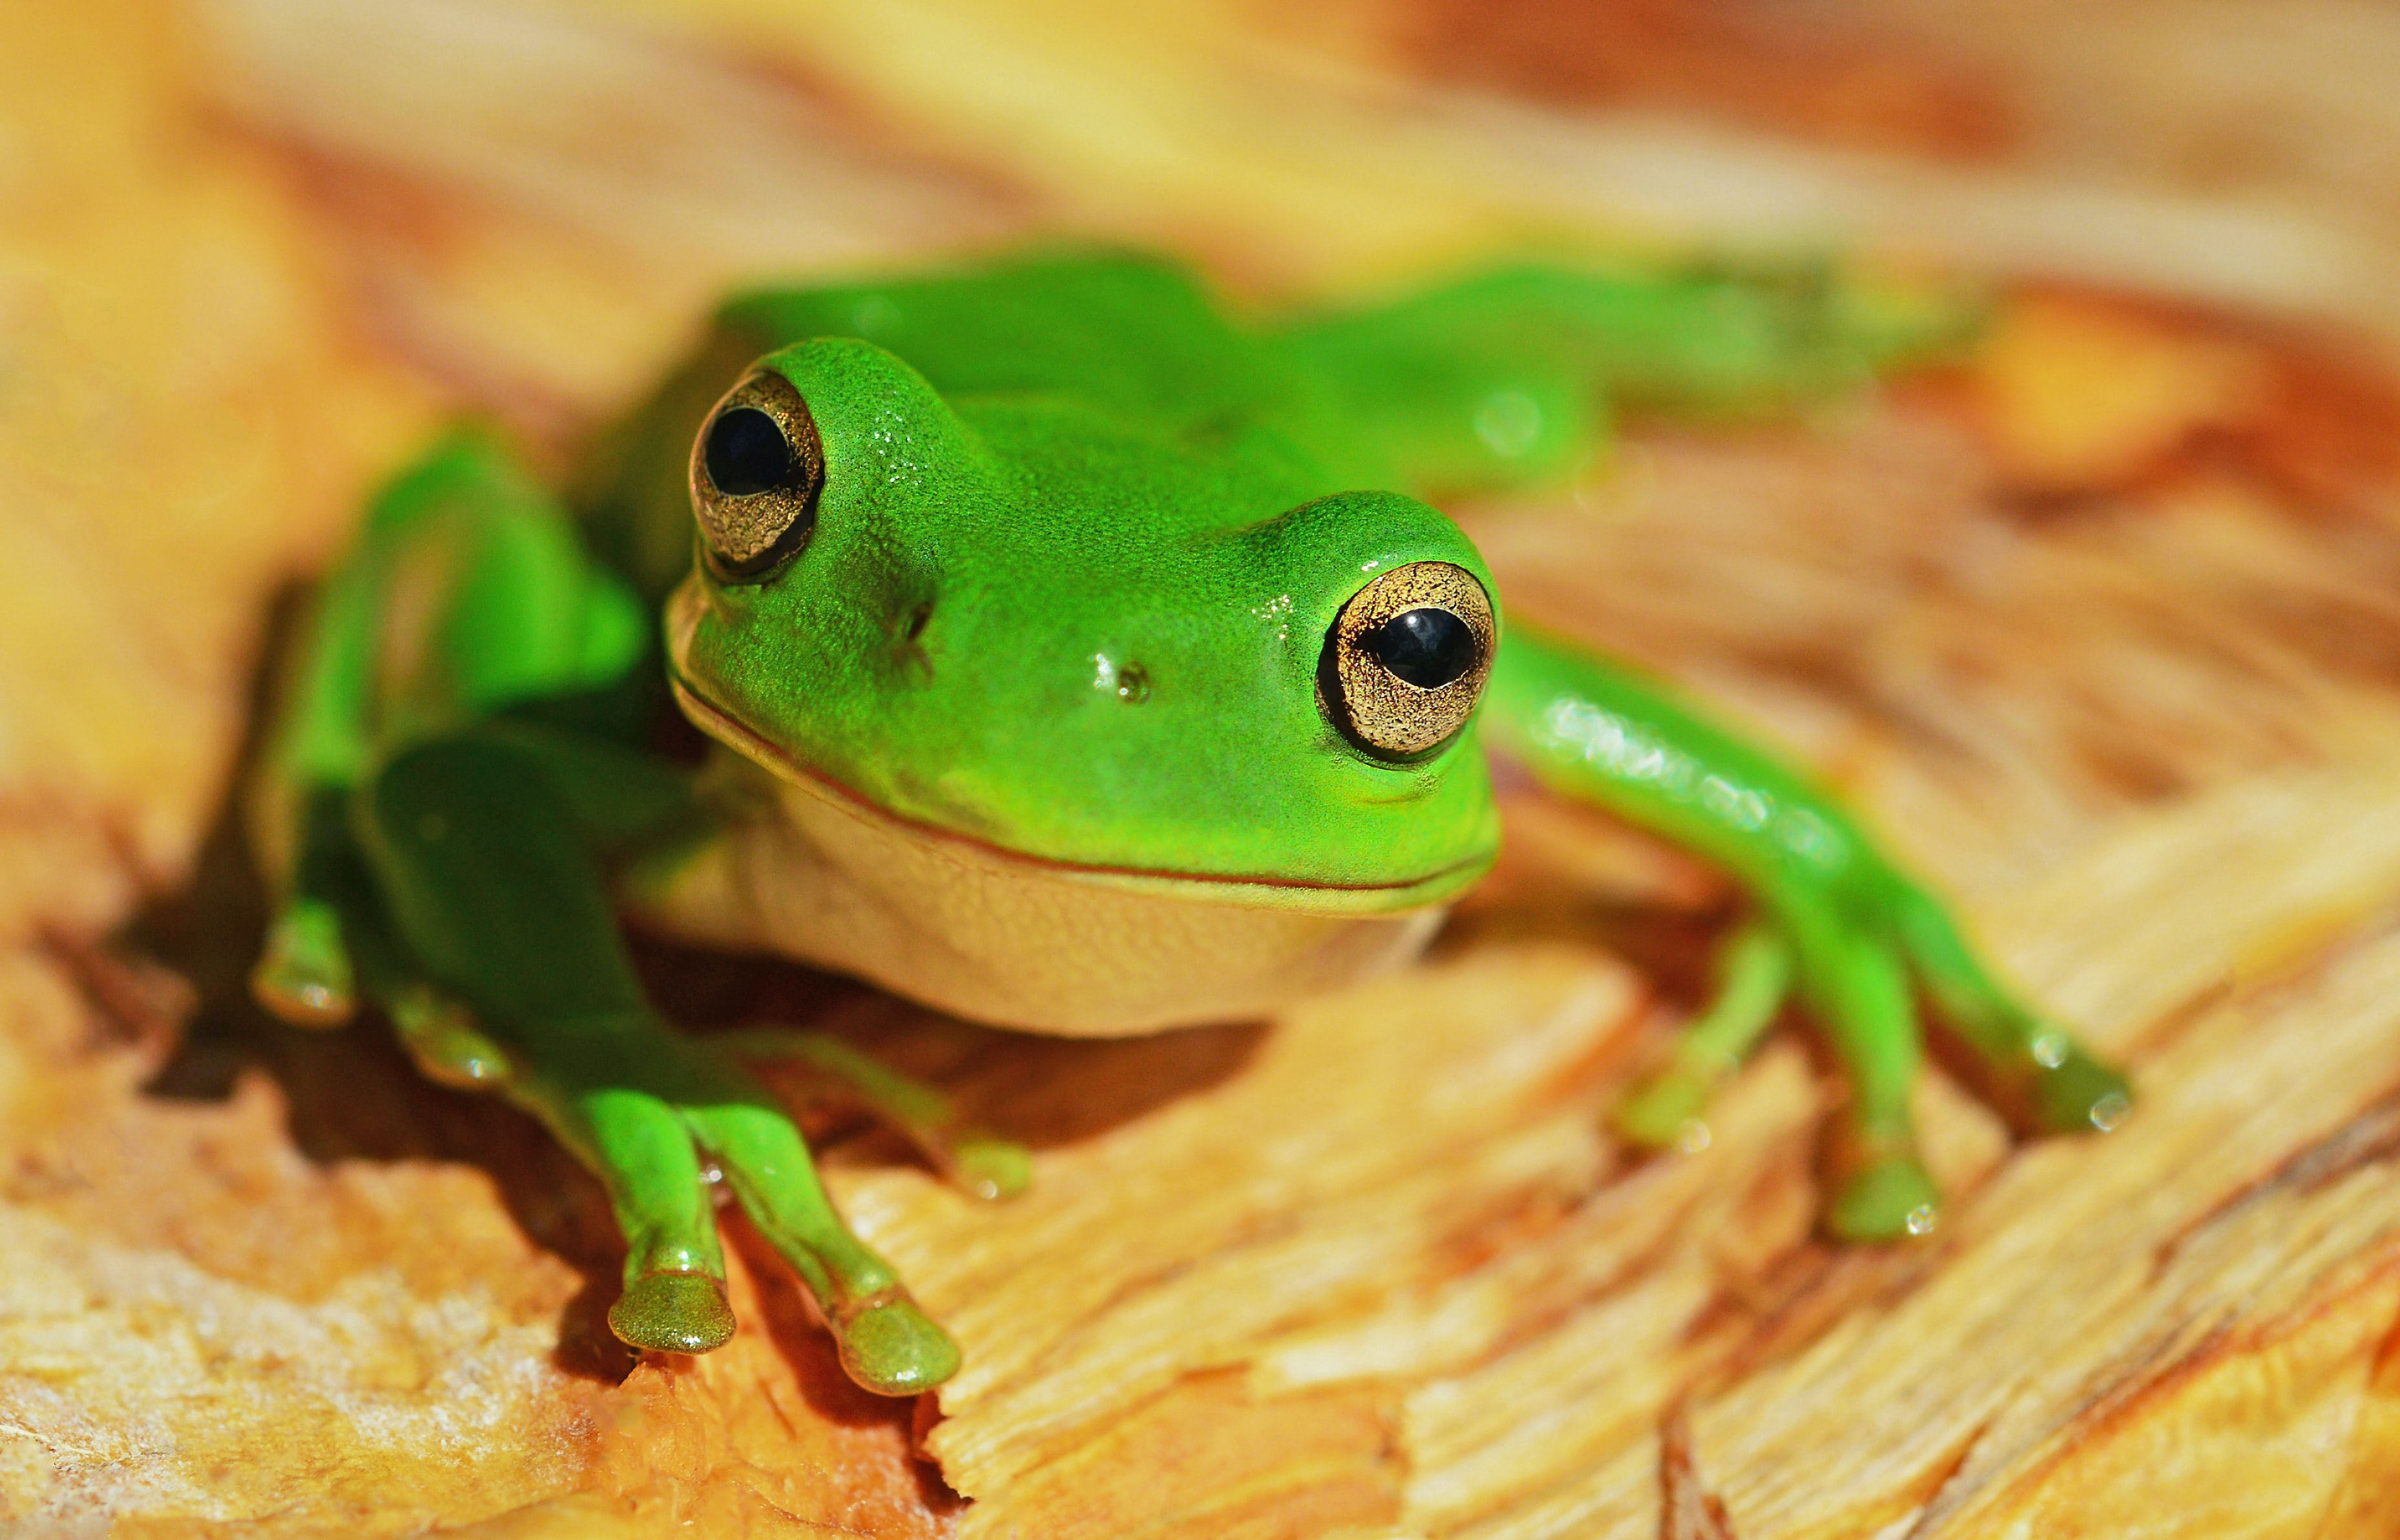 A bright green frog atop a piece of wood looks toward the camera, appearing to smile